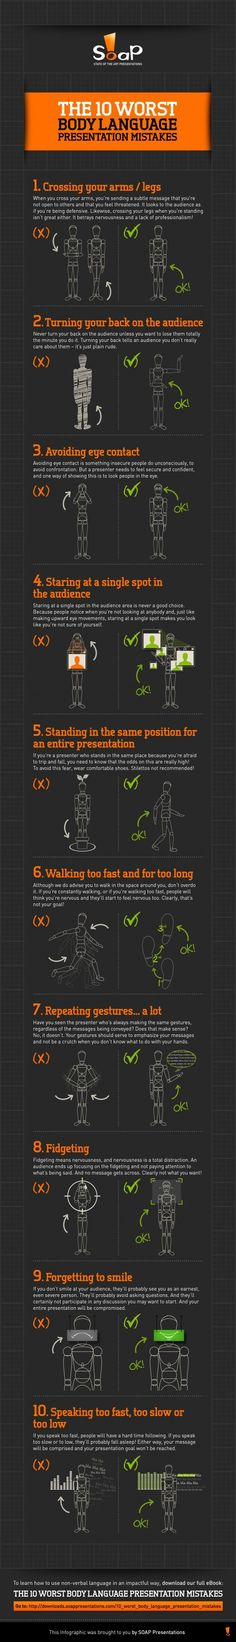 Interviews: The 8 Worst Body Language Mistakes — INFOGRAPHIC #soapinfographic